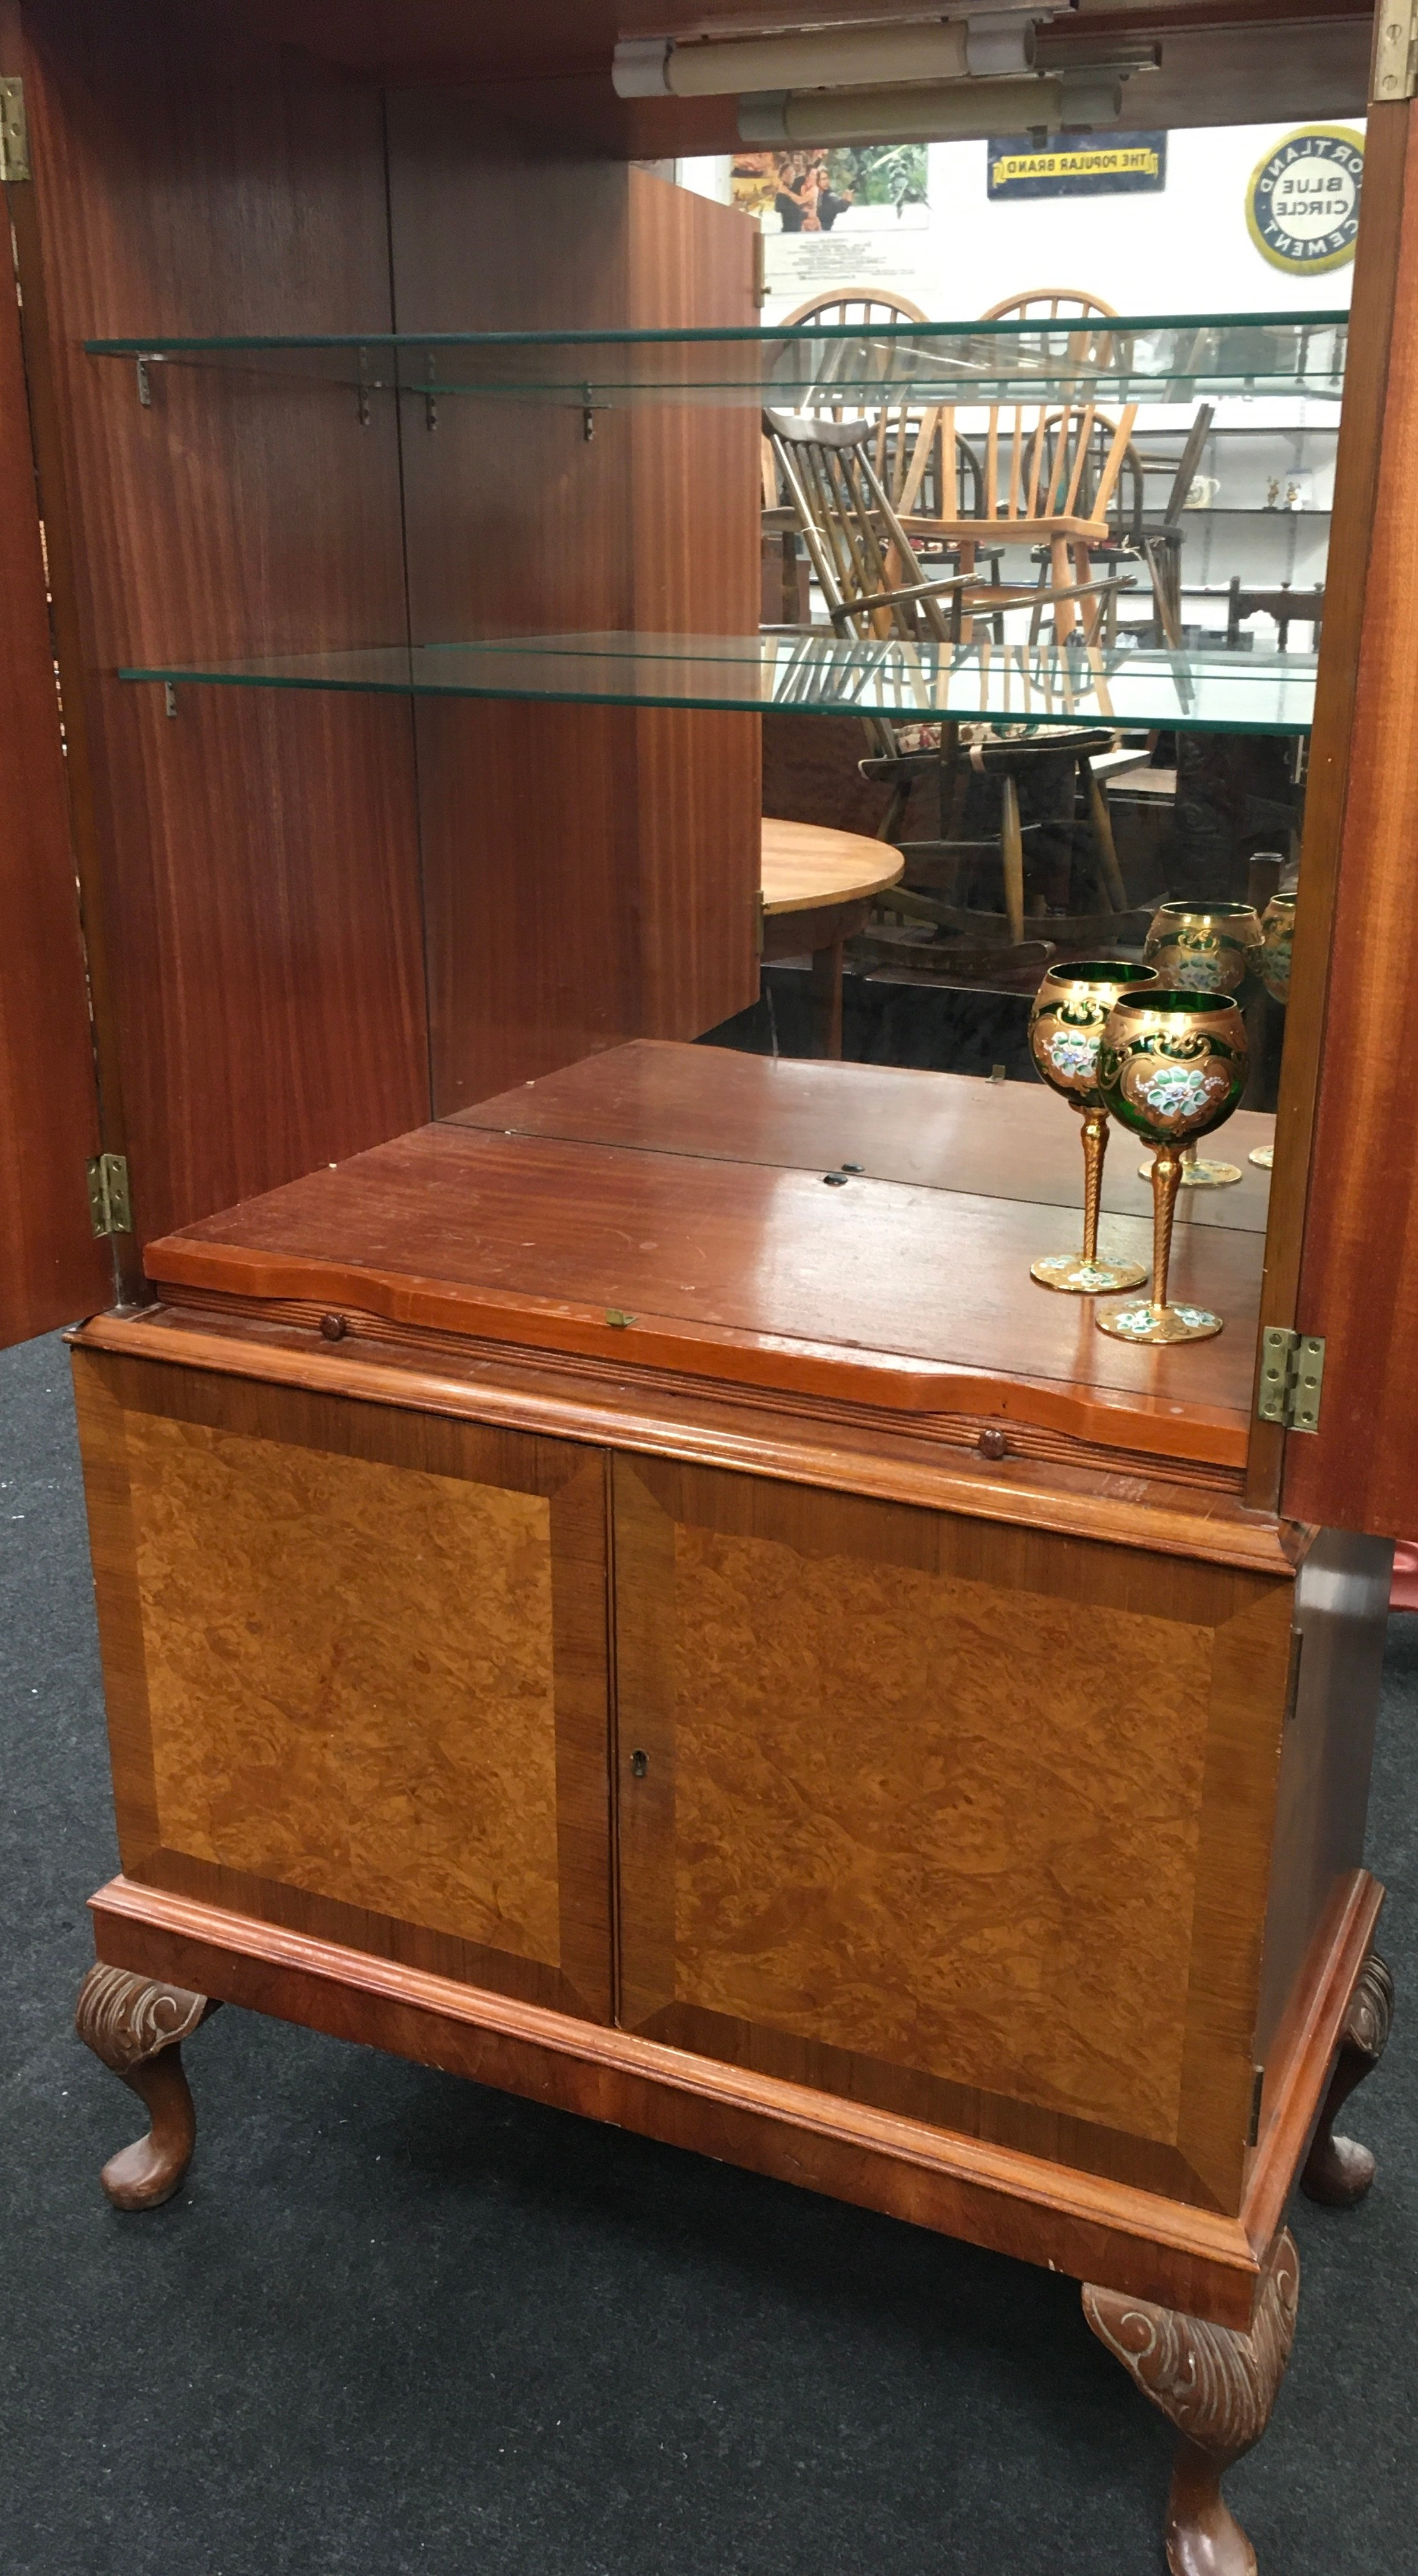 Mahogany alcohol/bar display unit on cabriole legs fitted with two sections includes key together - Image 4 of 4